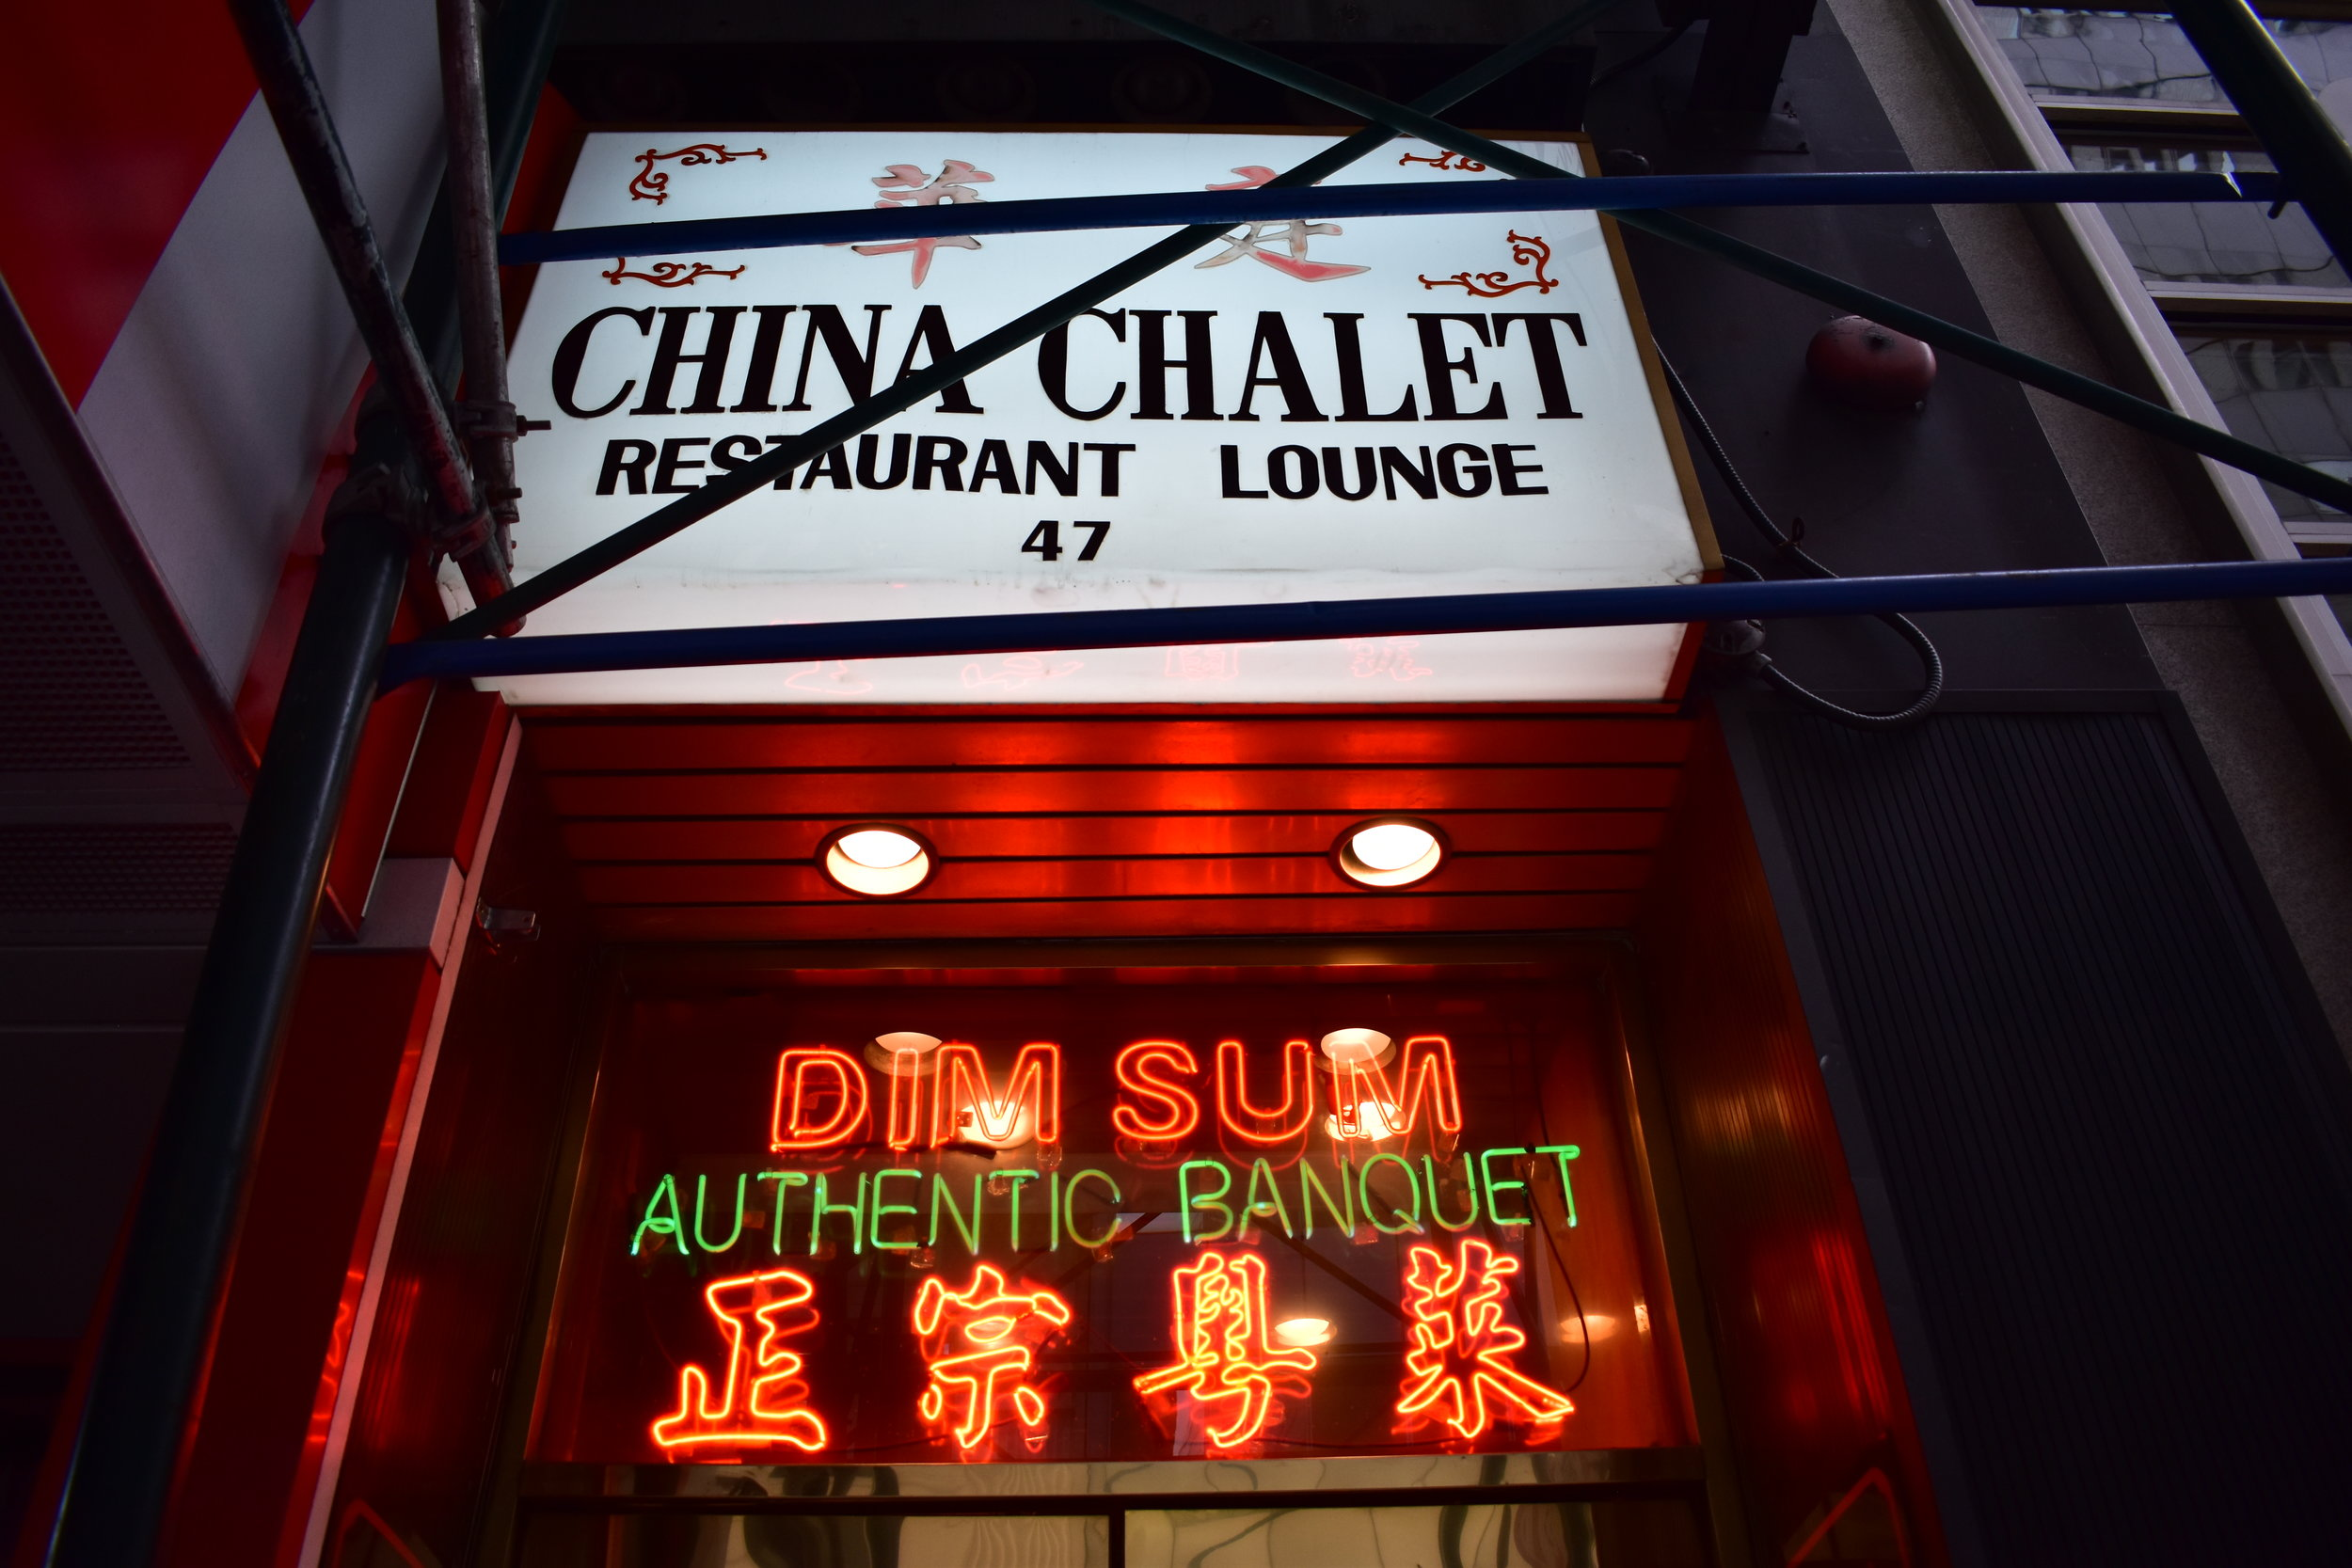 China Chalet on Broadway, NYC. || Photo credit to Meg Capone.